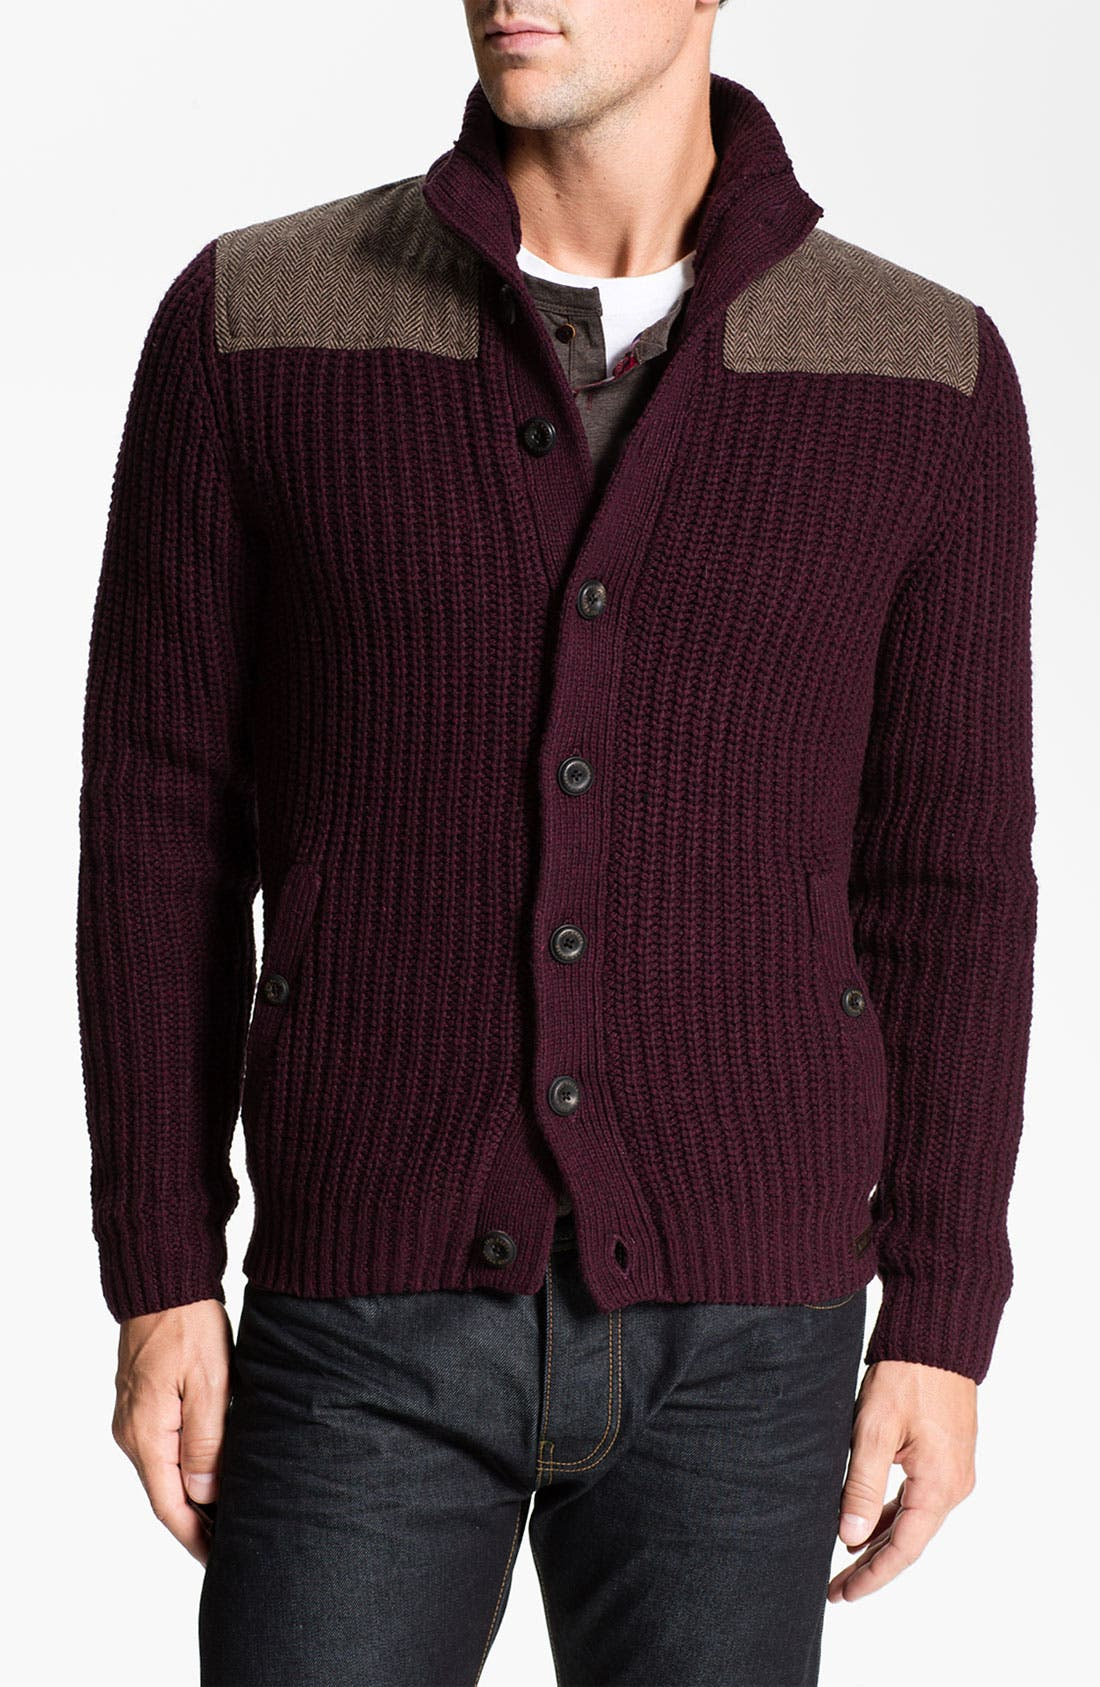 Main Image - Ted Baker London 'Princiz' Knit Cardigan